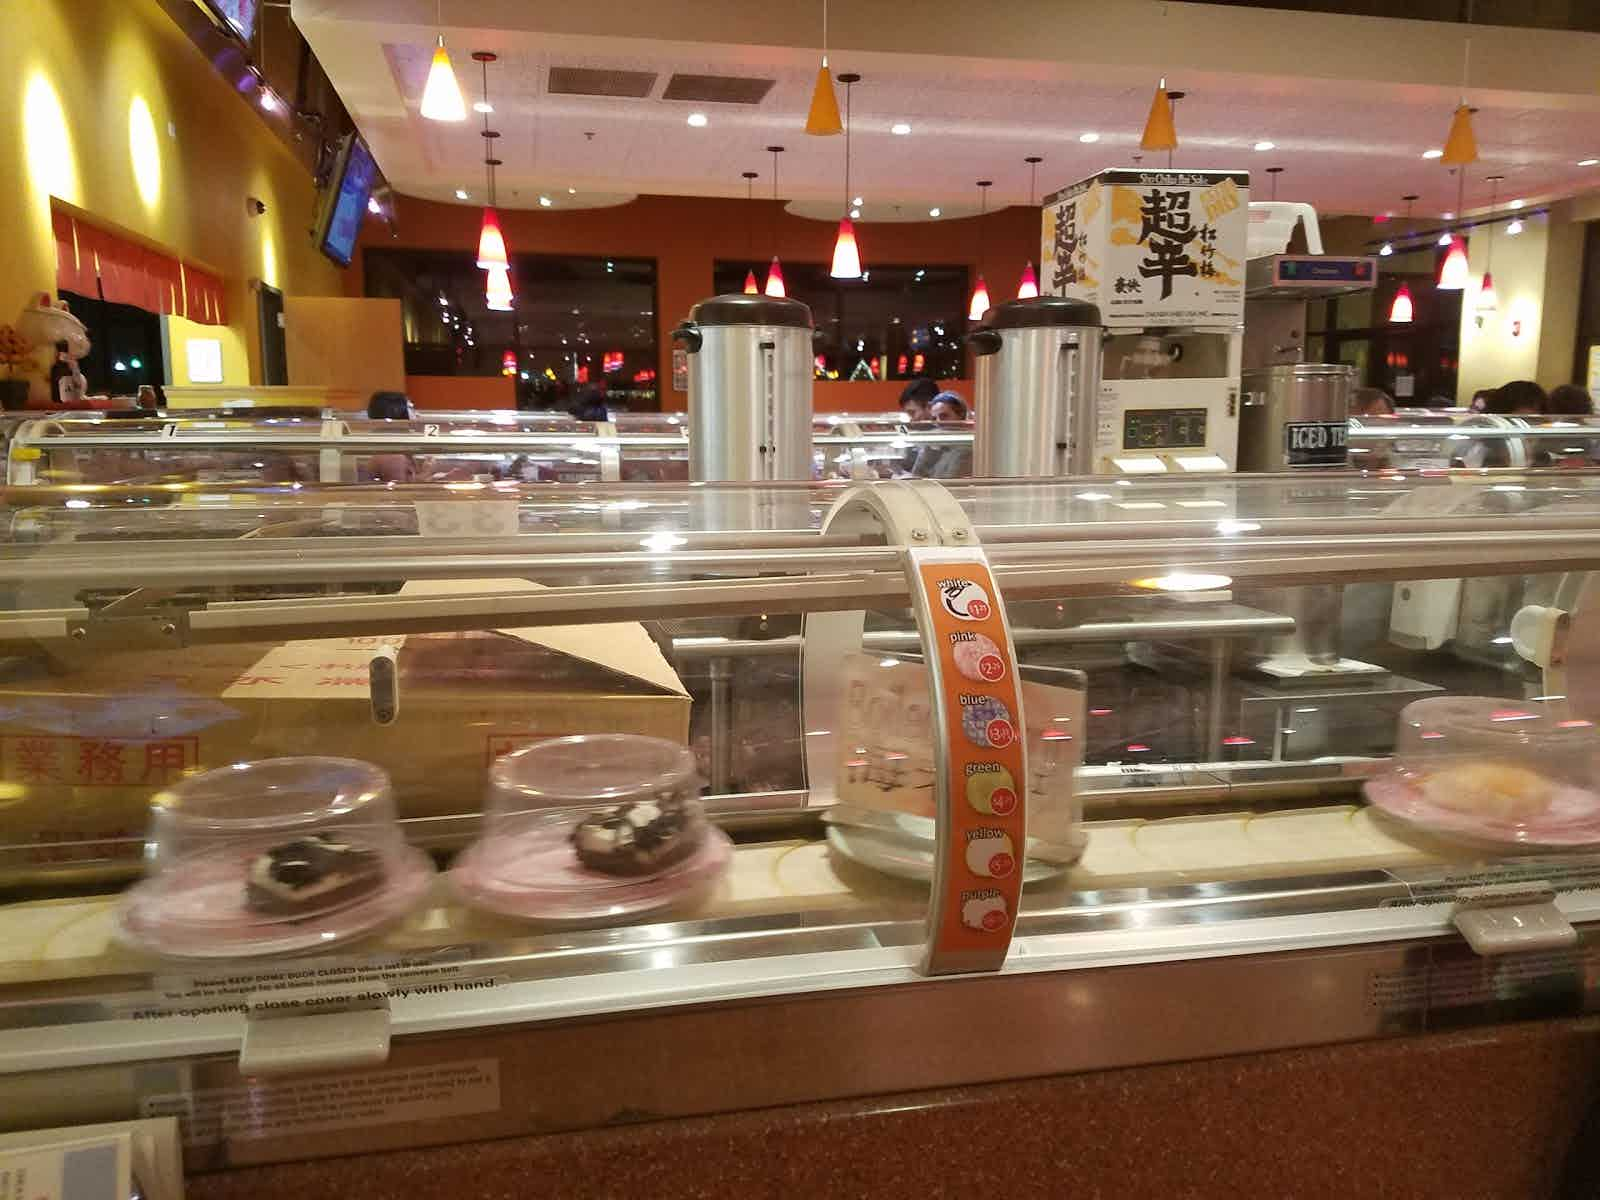 Sushi Station Elgin Restaurant Review Zagat Compare 6 hotels with a gym in elgin using 1431 real guest reviews. sushi station elgin restaurant